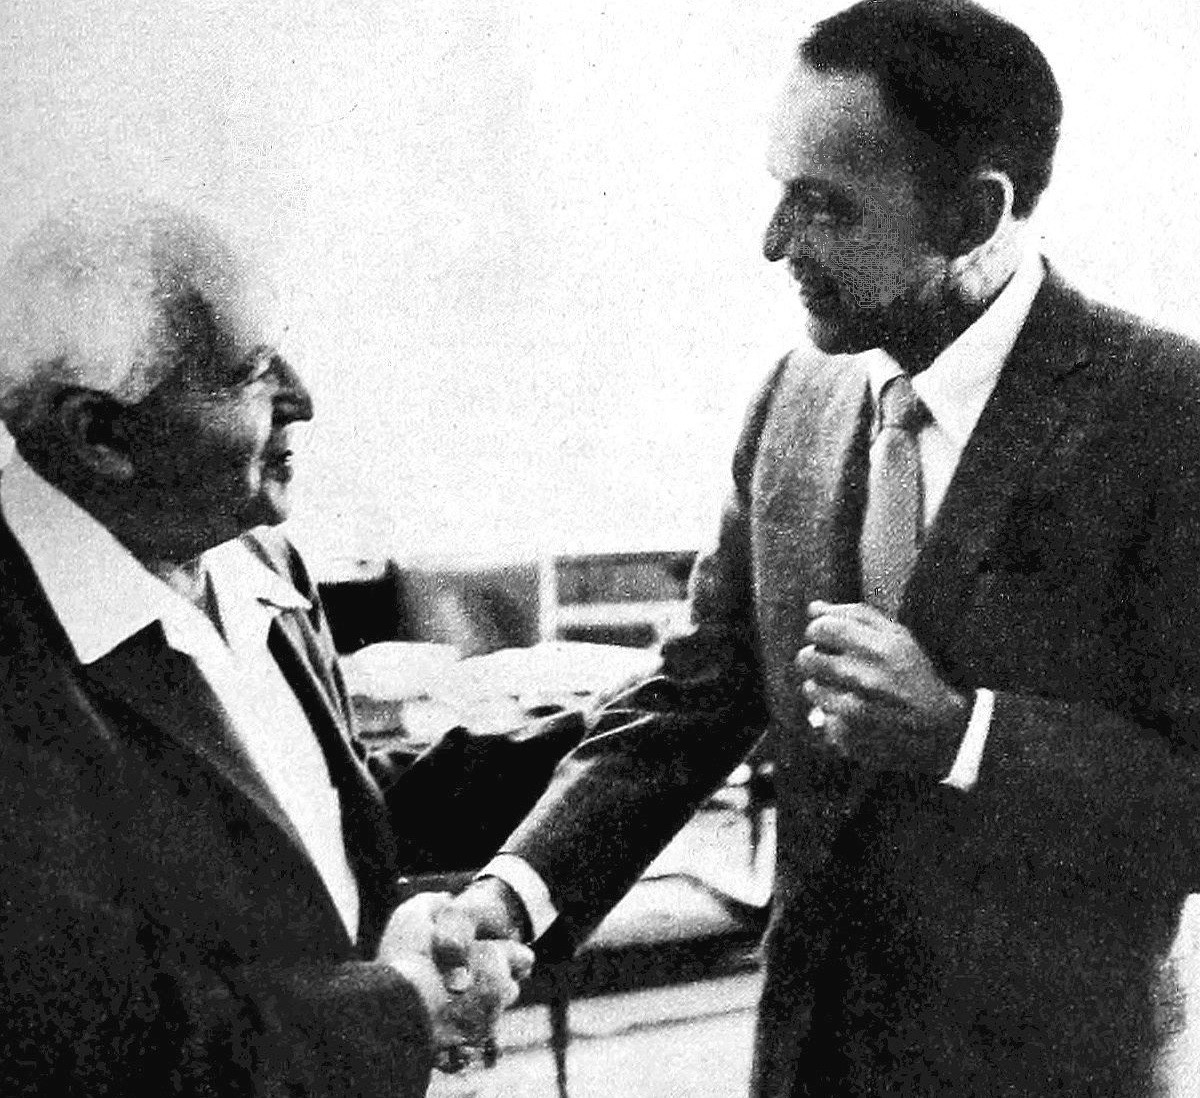 Frank Sinatra with Prime Minister David Ben-Gurion in 1962, during Sinatra's first world tour.